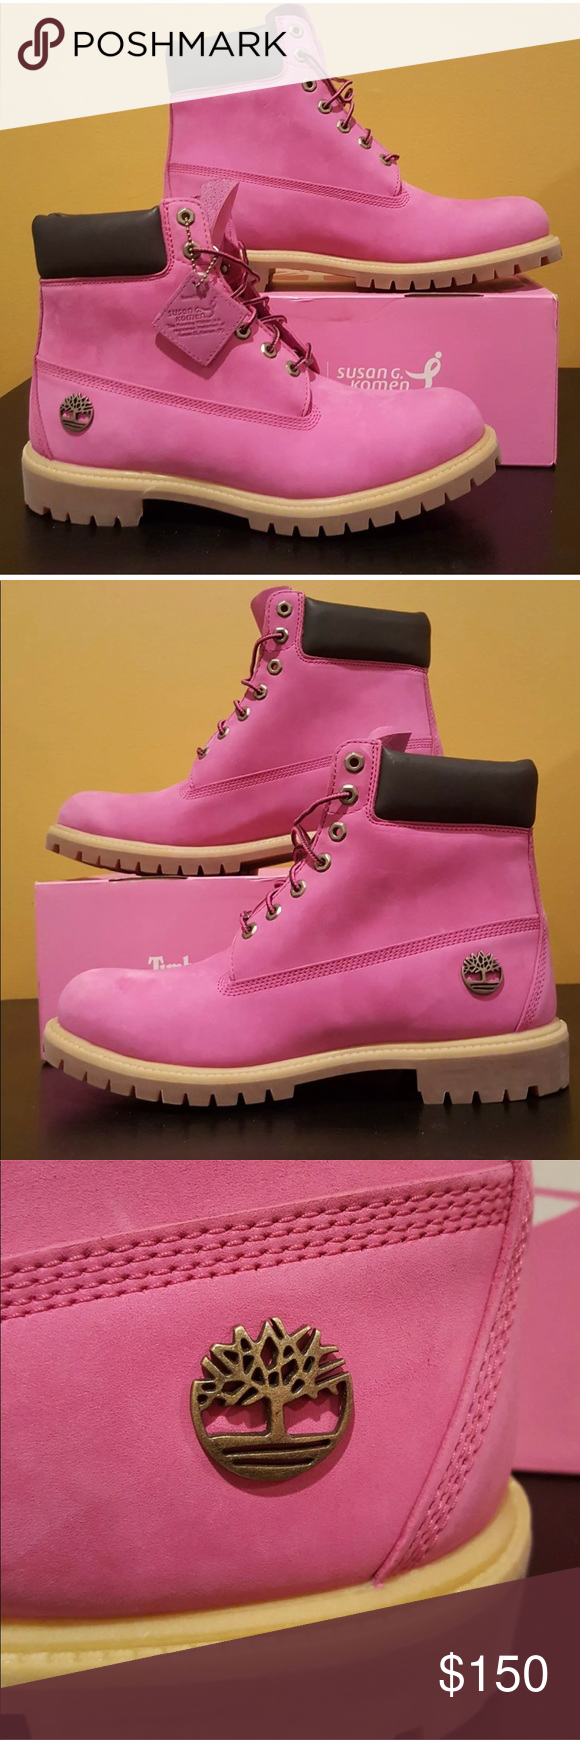 f44770aad8d7 Timberland has teamed up with the Susan G. Komen foundation in honor of Breast  Cancer Awareness to kickoff ...